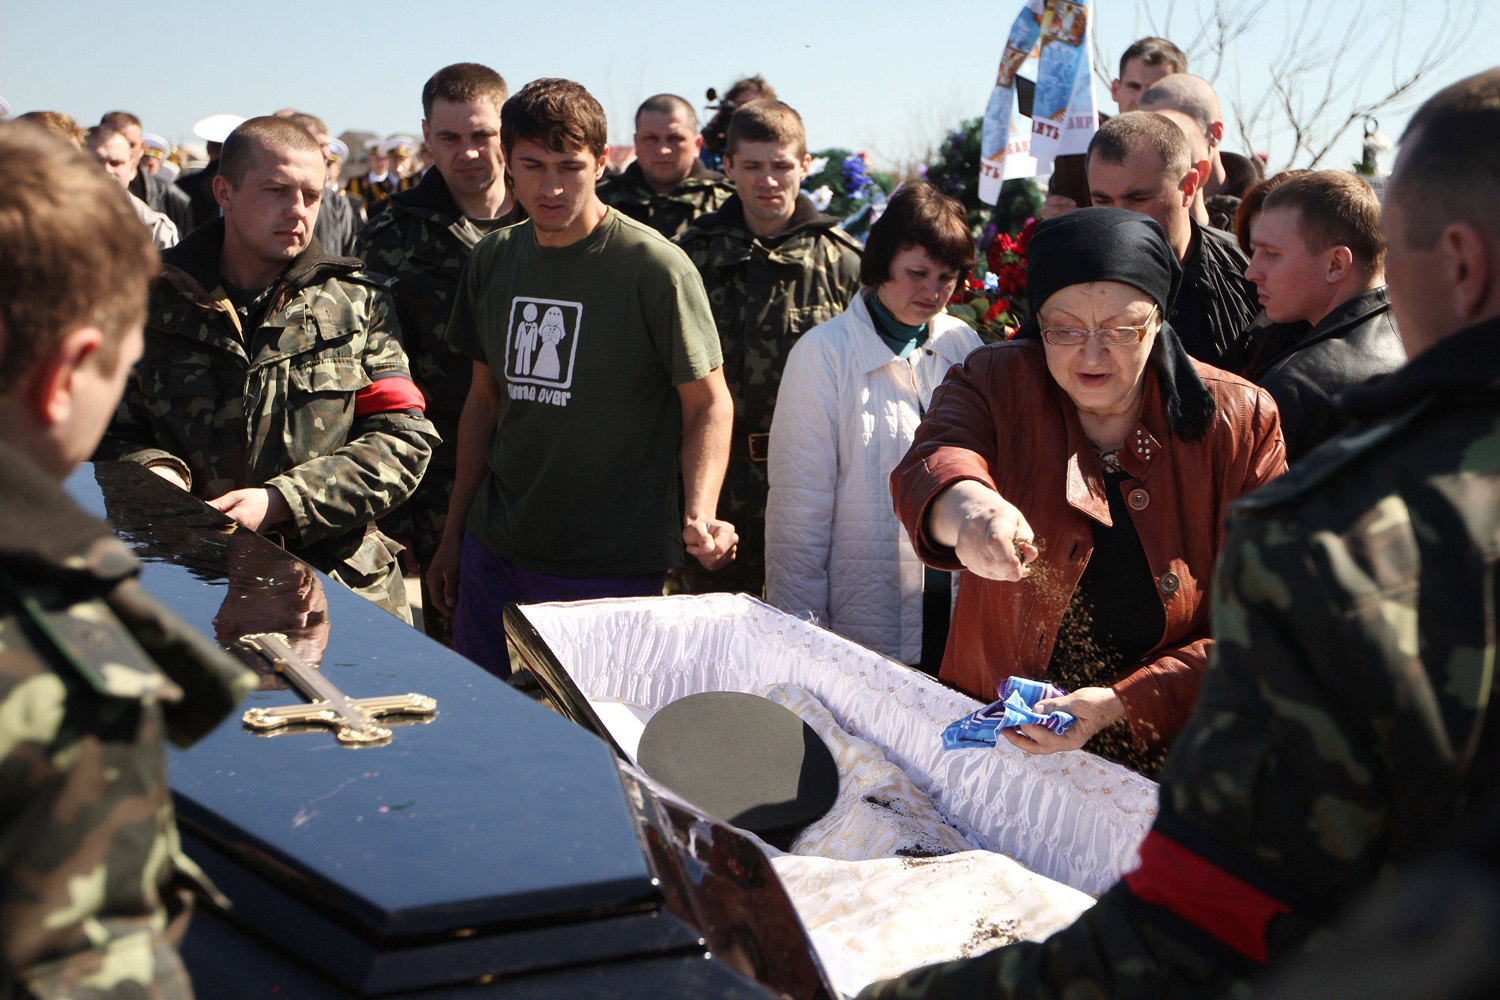 Mar. 22, 2014. People attend the funeral ceremony of Ukrainian soldier Sergey Kokurin in Simferopol.  Crimea held a joint funeral for an Ukrainian soldier and a pro-Moscow militiaman killed this week -- the first casualties since Russian forces seized the Black Sea peninsula.